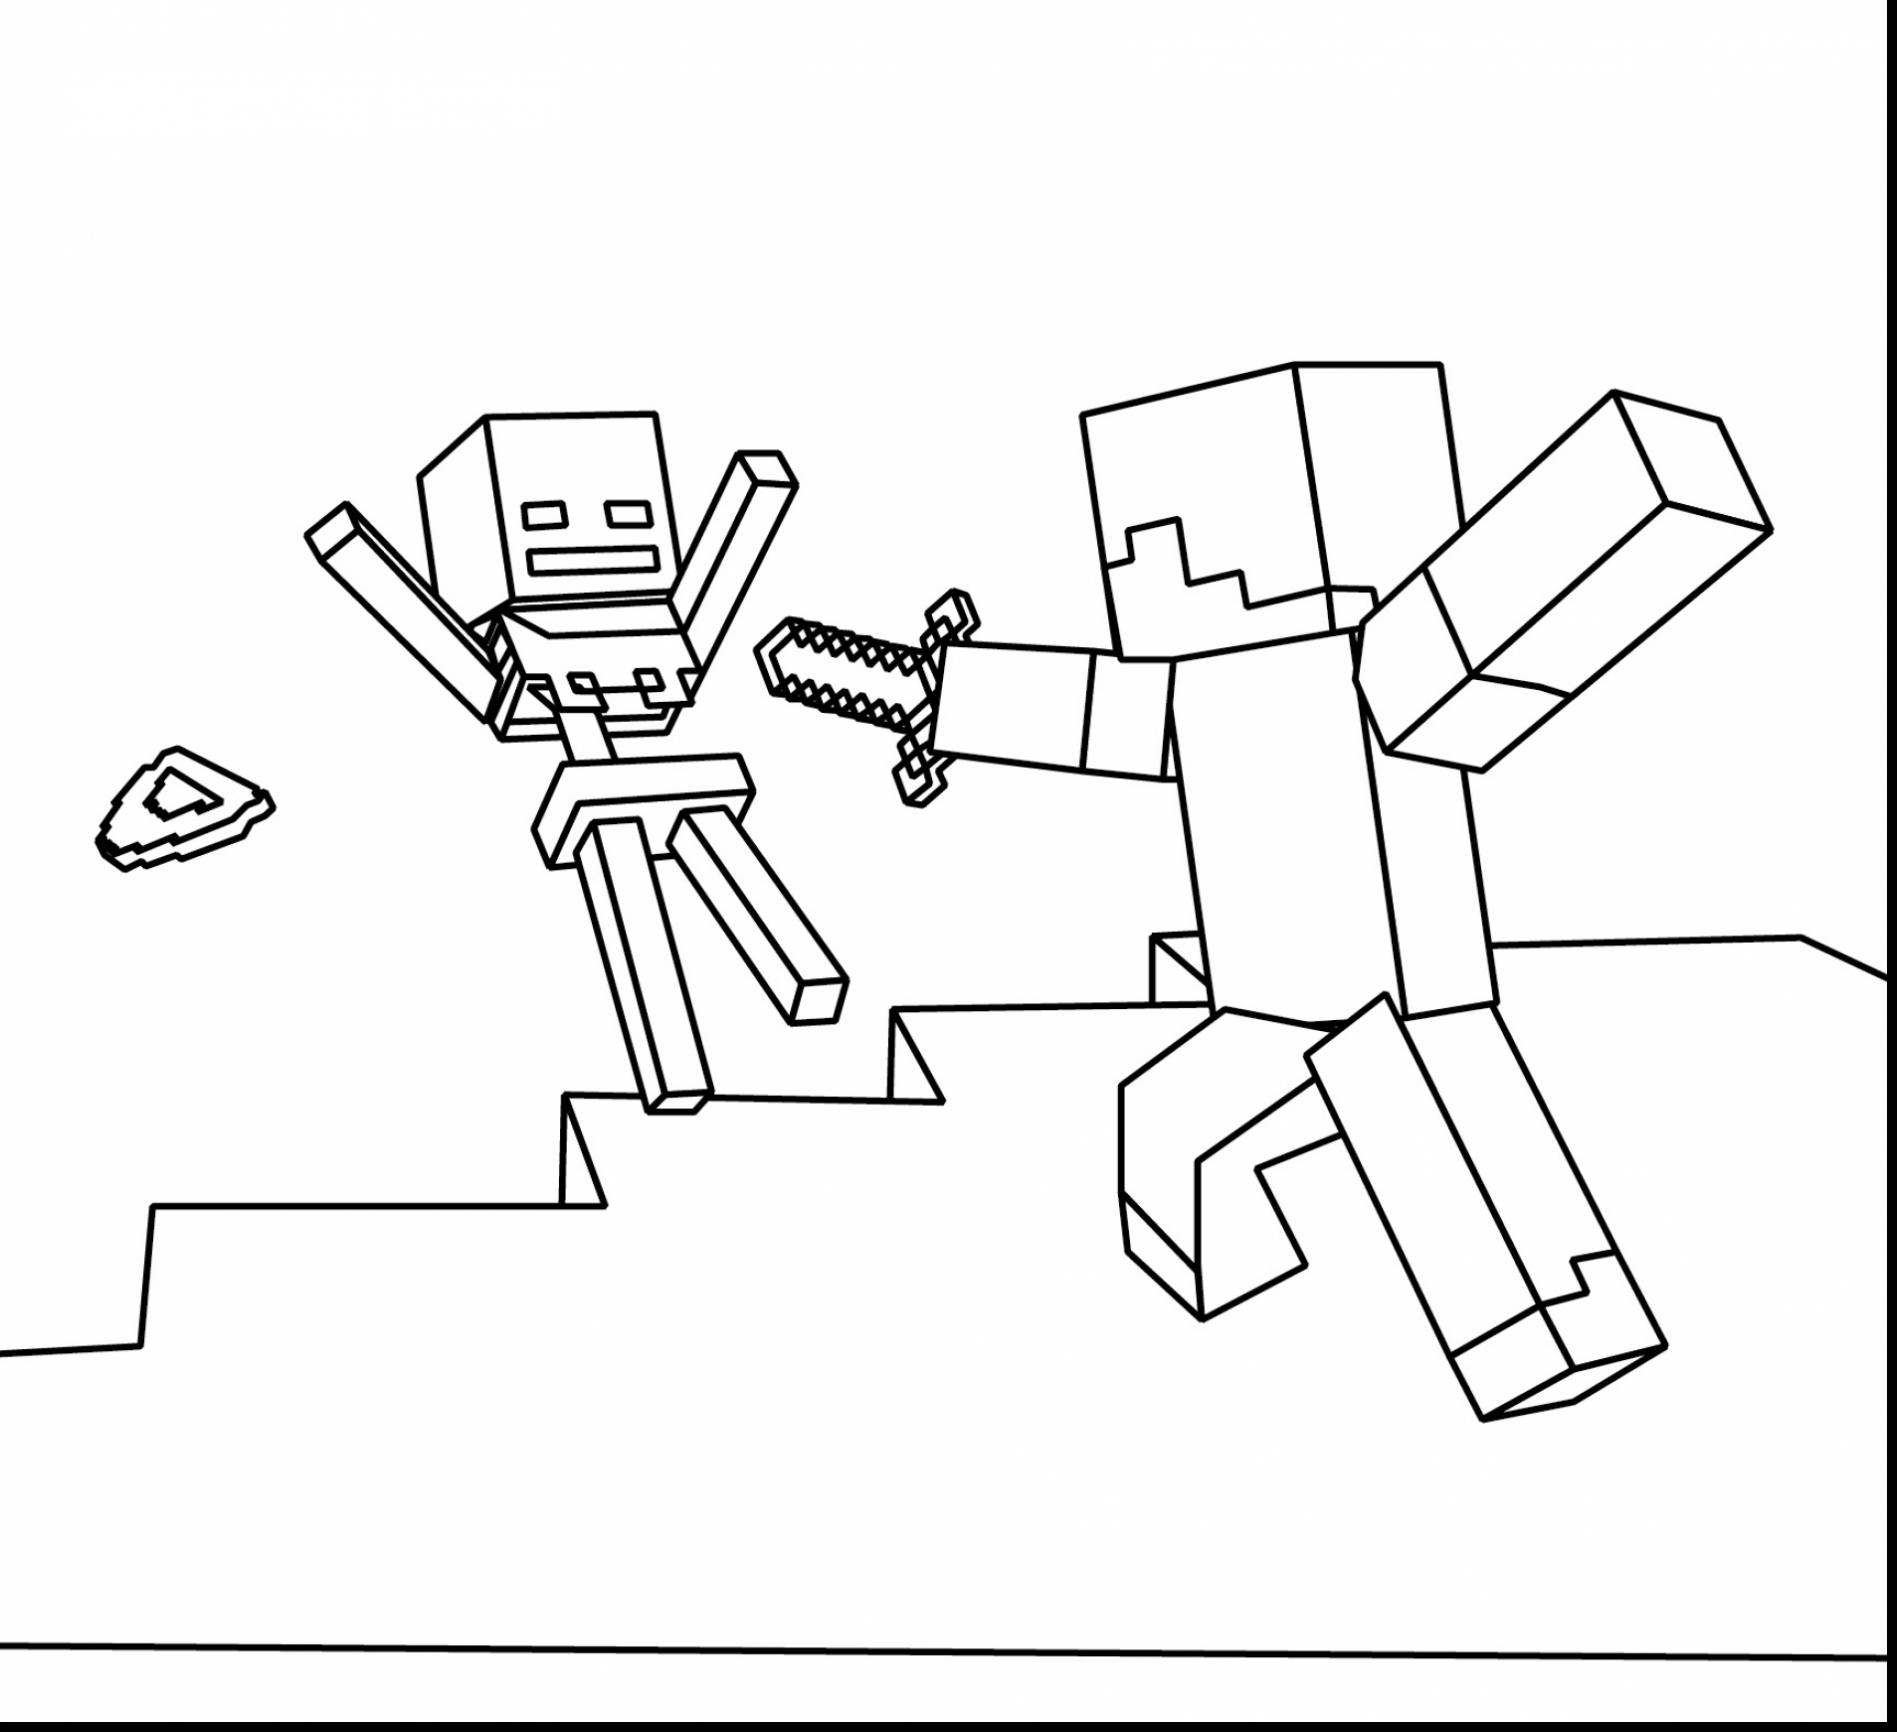 Minecraft Ausmalbilder Creeper : Minecraft Drawing Creeper At Getdrawings Com Free For Personal Use